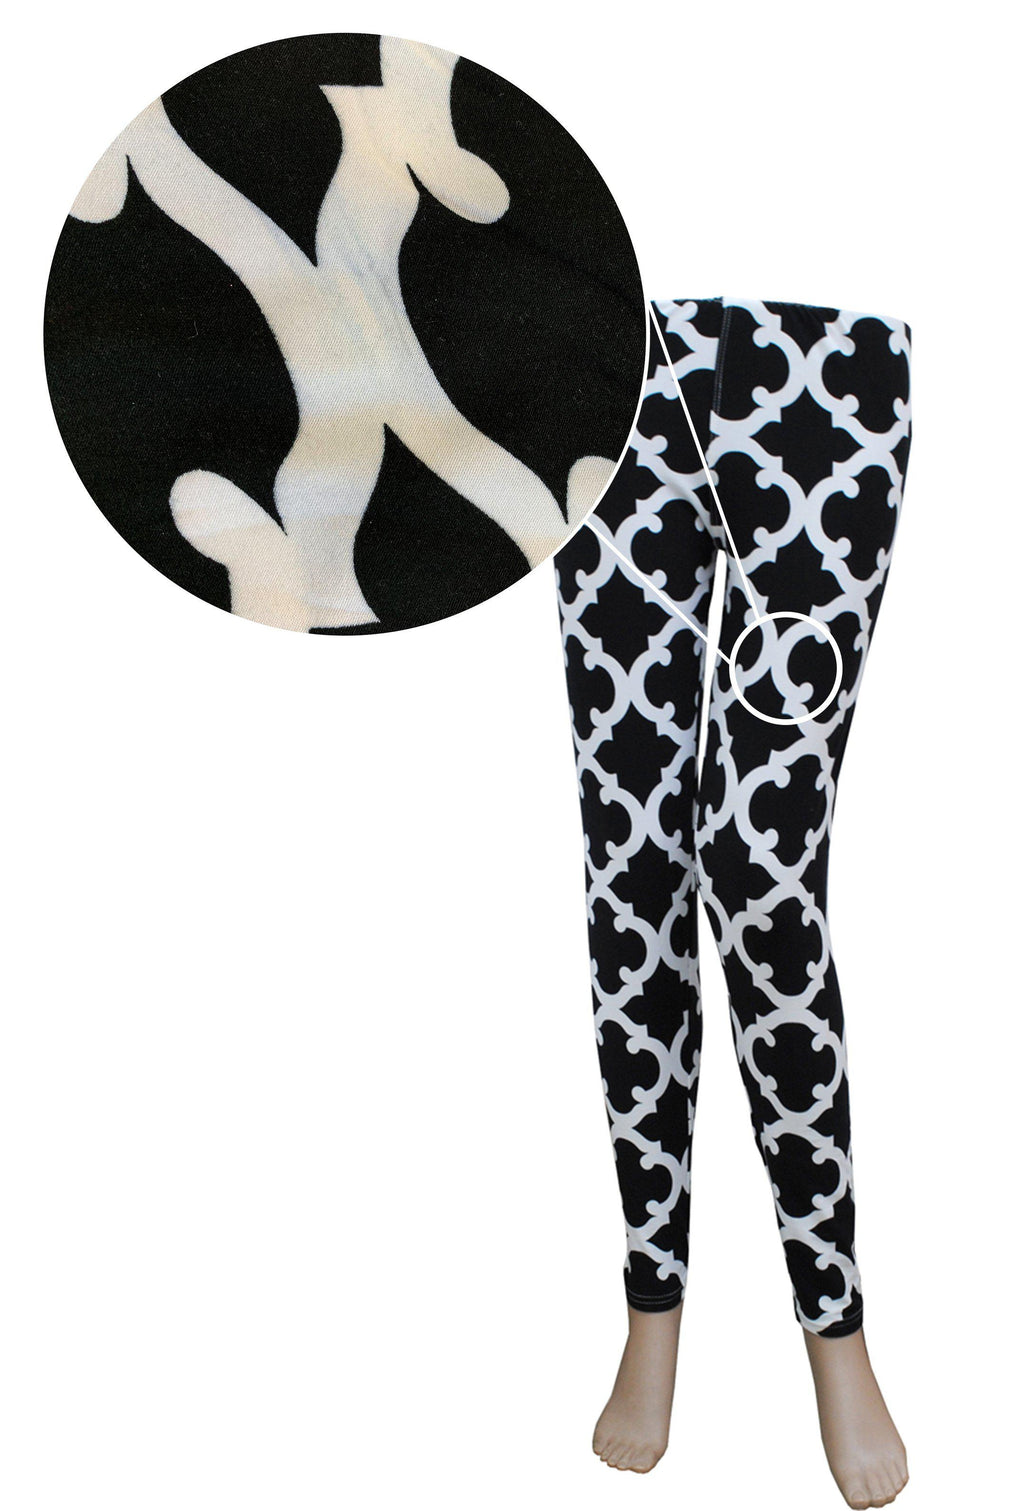 SALE! STAINED! Geometric Clover NGIL Fashion Leggings